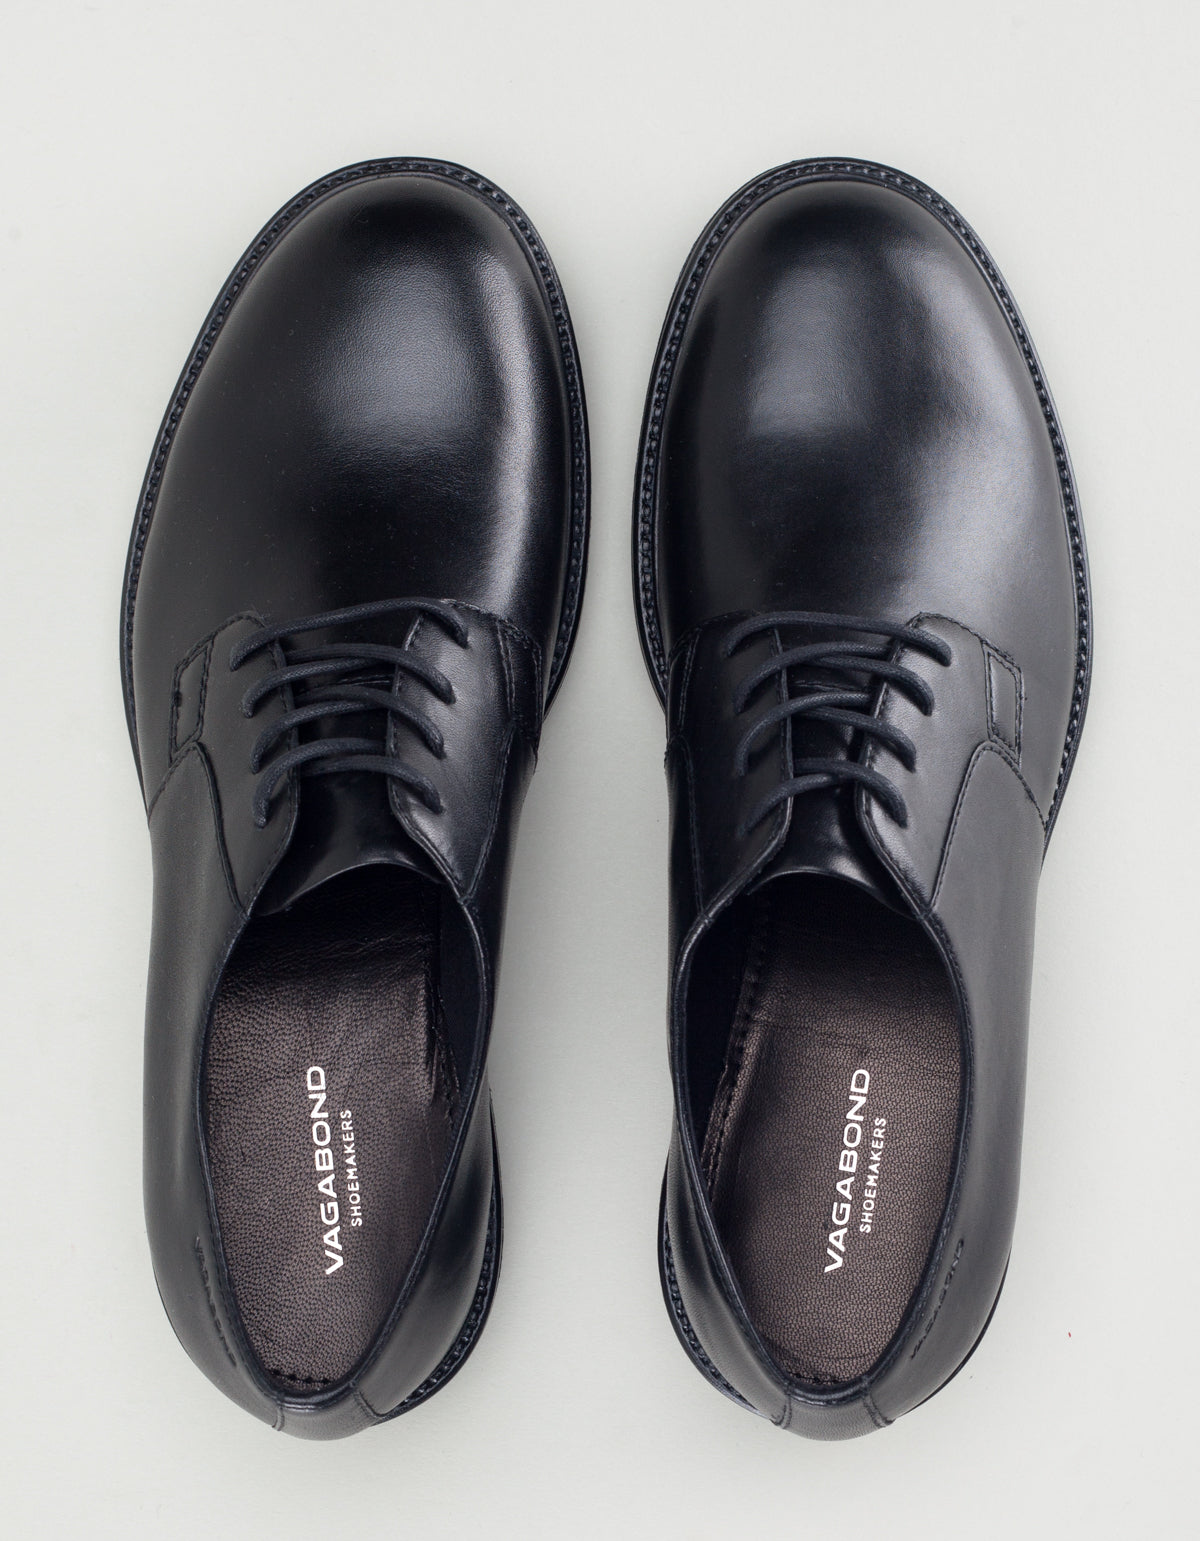 Vagabond Kenova Oxford Black